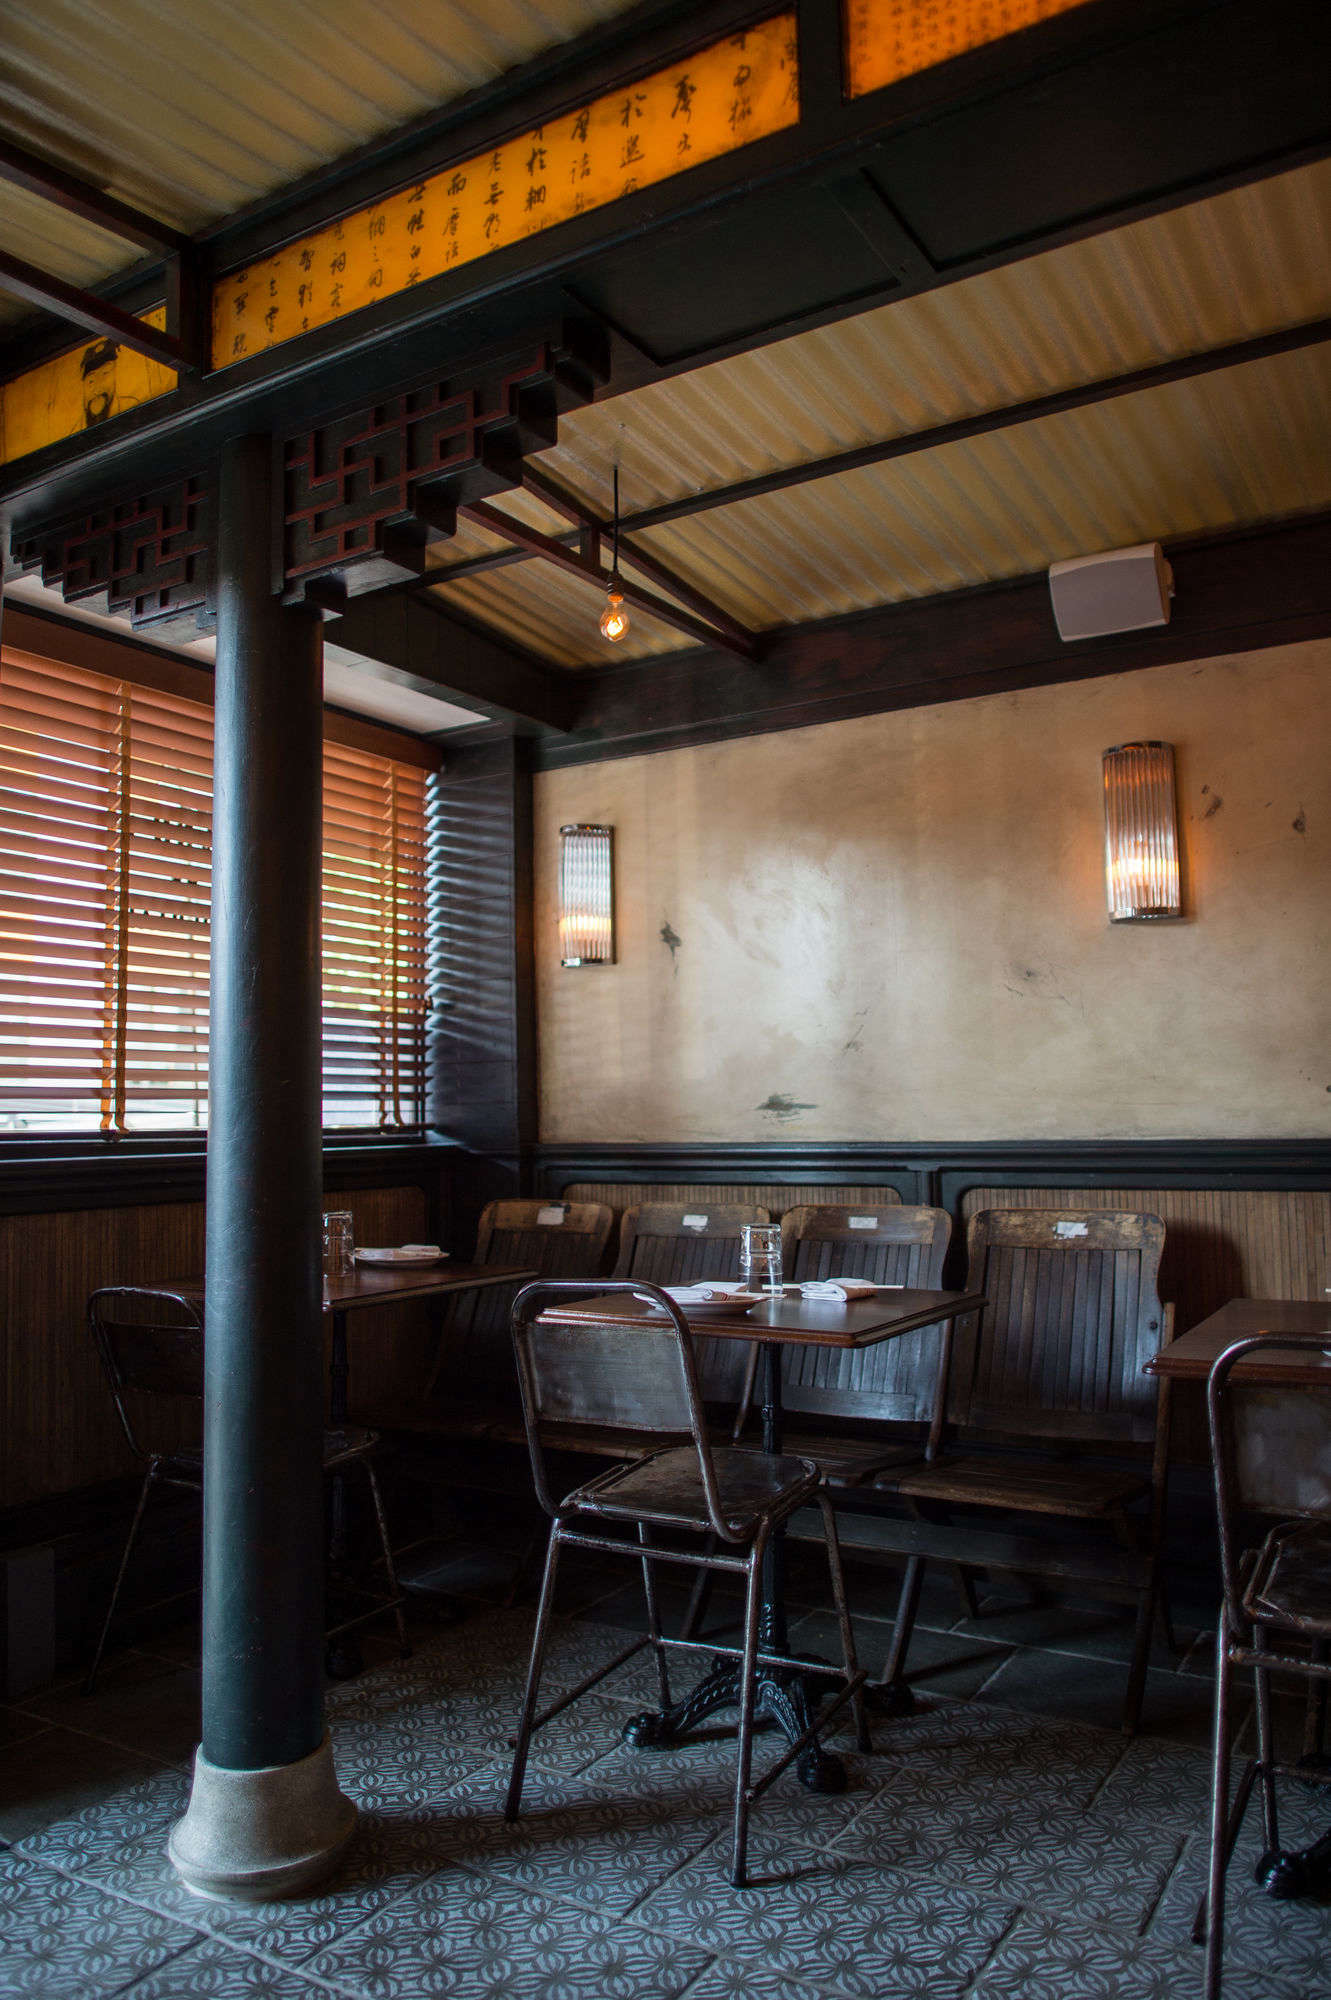 Kings County Imperial A Brooklyn Restaurants Heirloom Chinese